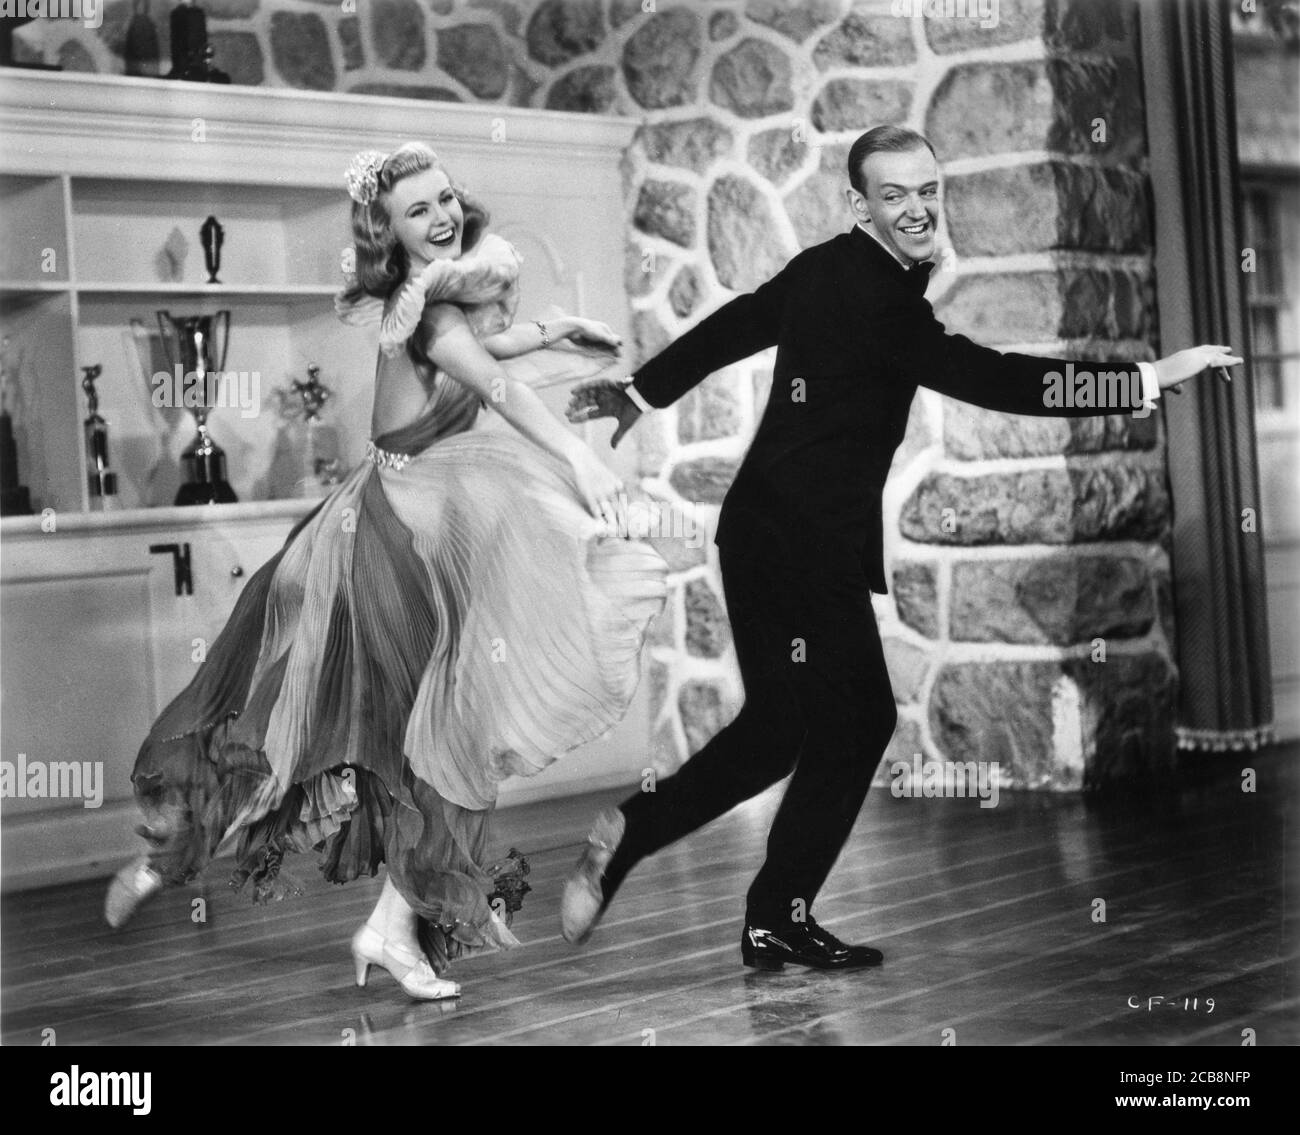 Fred Astaire And Ginger Rogers Dancing High Resolution Stock Photography And Images Alamy